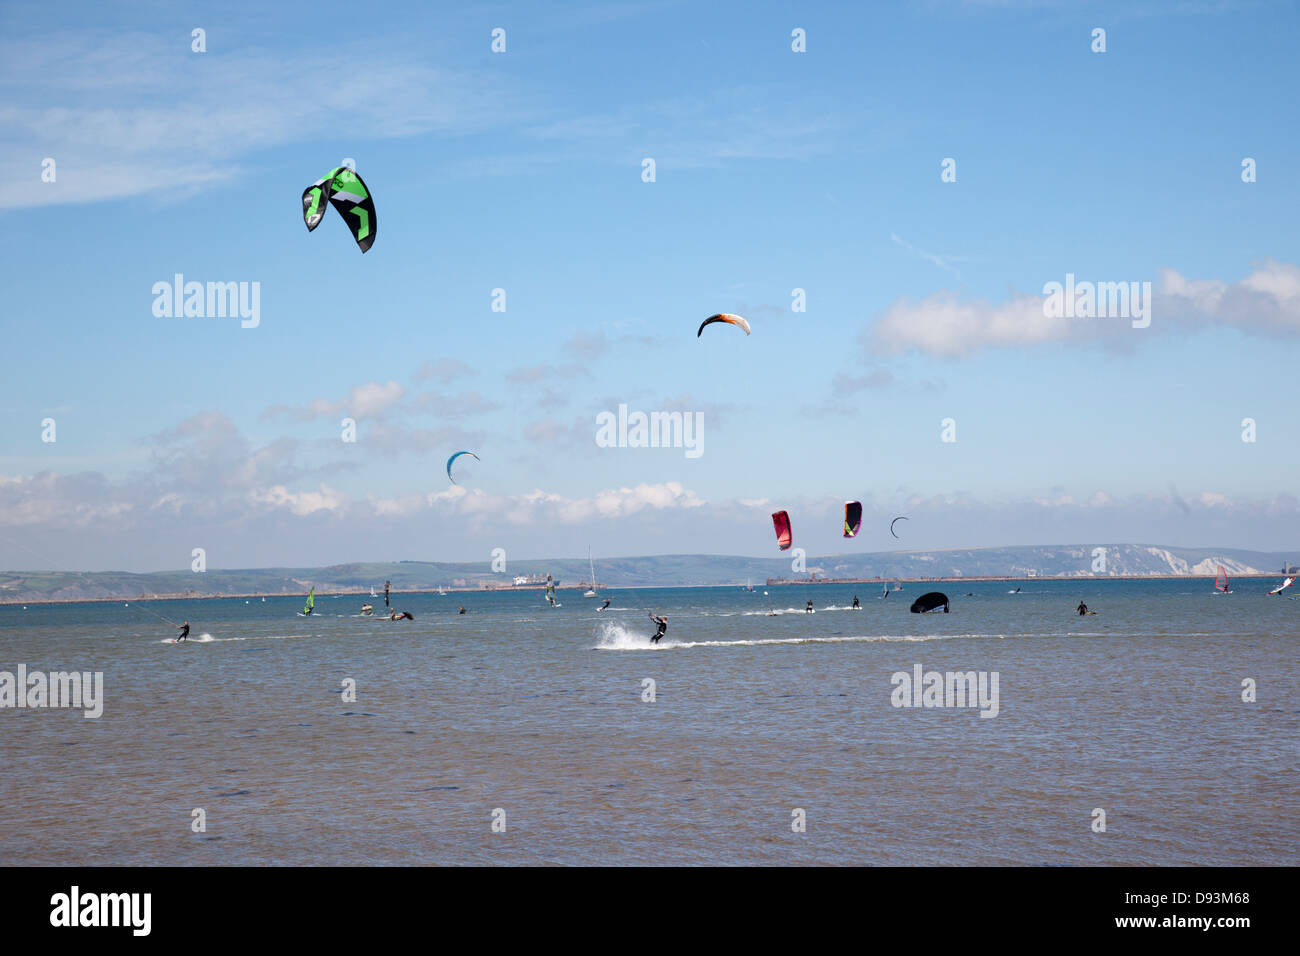 Kite surfers at Portland harbour, Dorset, UK - Stock Image